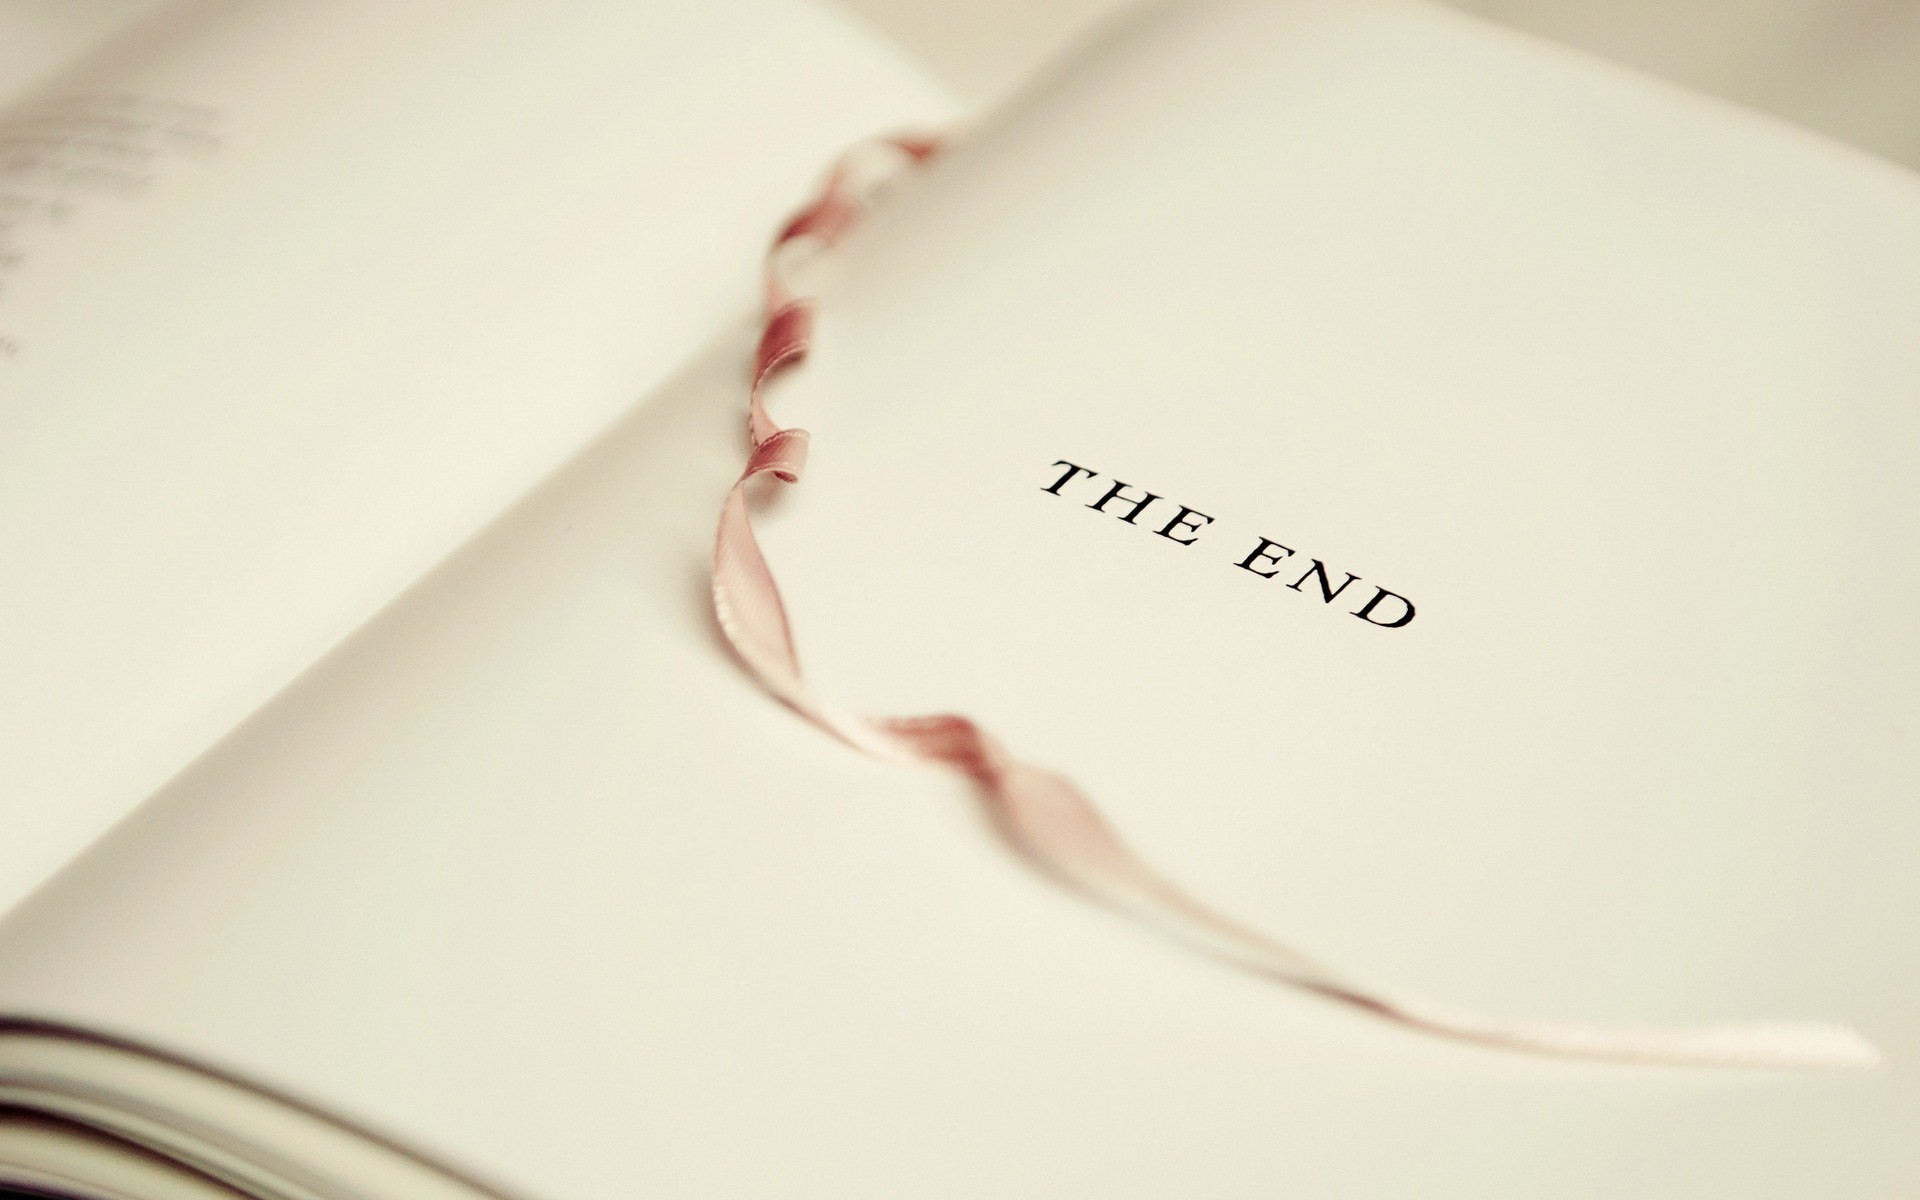 … the end book page silk bookmark hd wallpaper desktop background hd  1920x1080the end book page silk